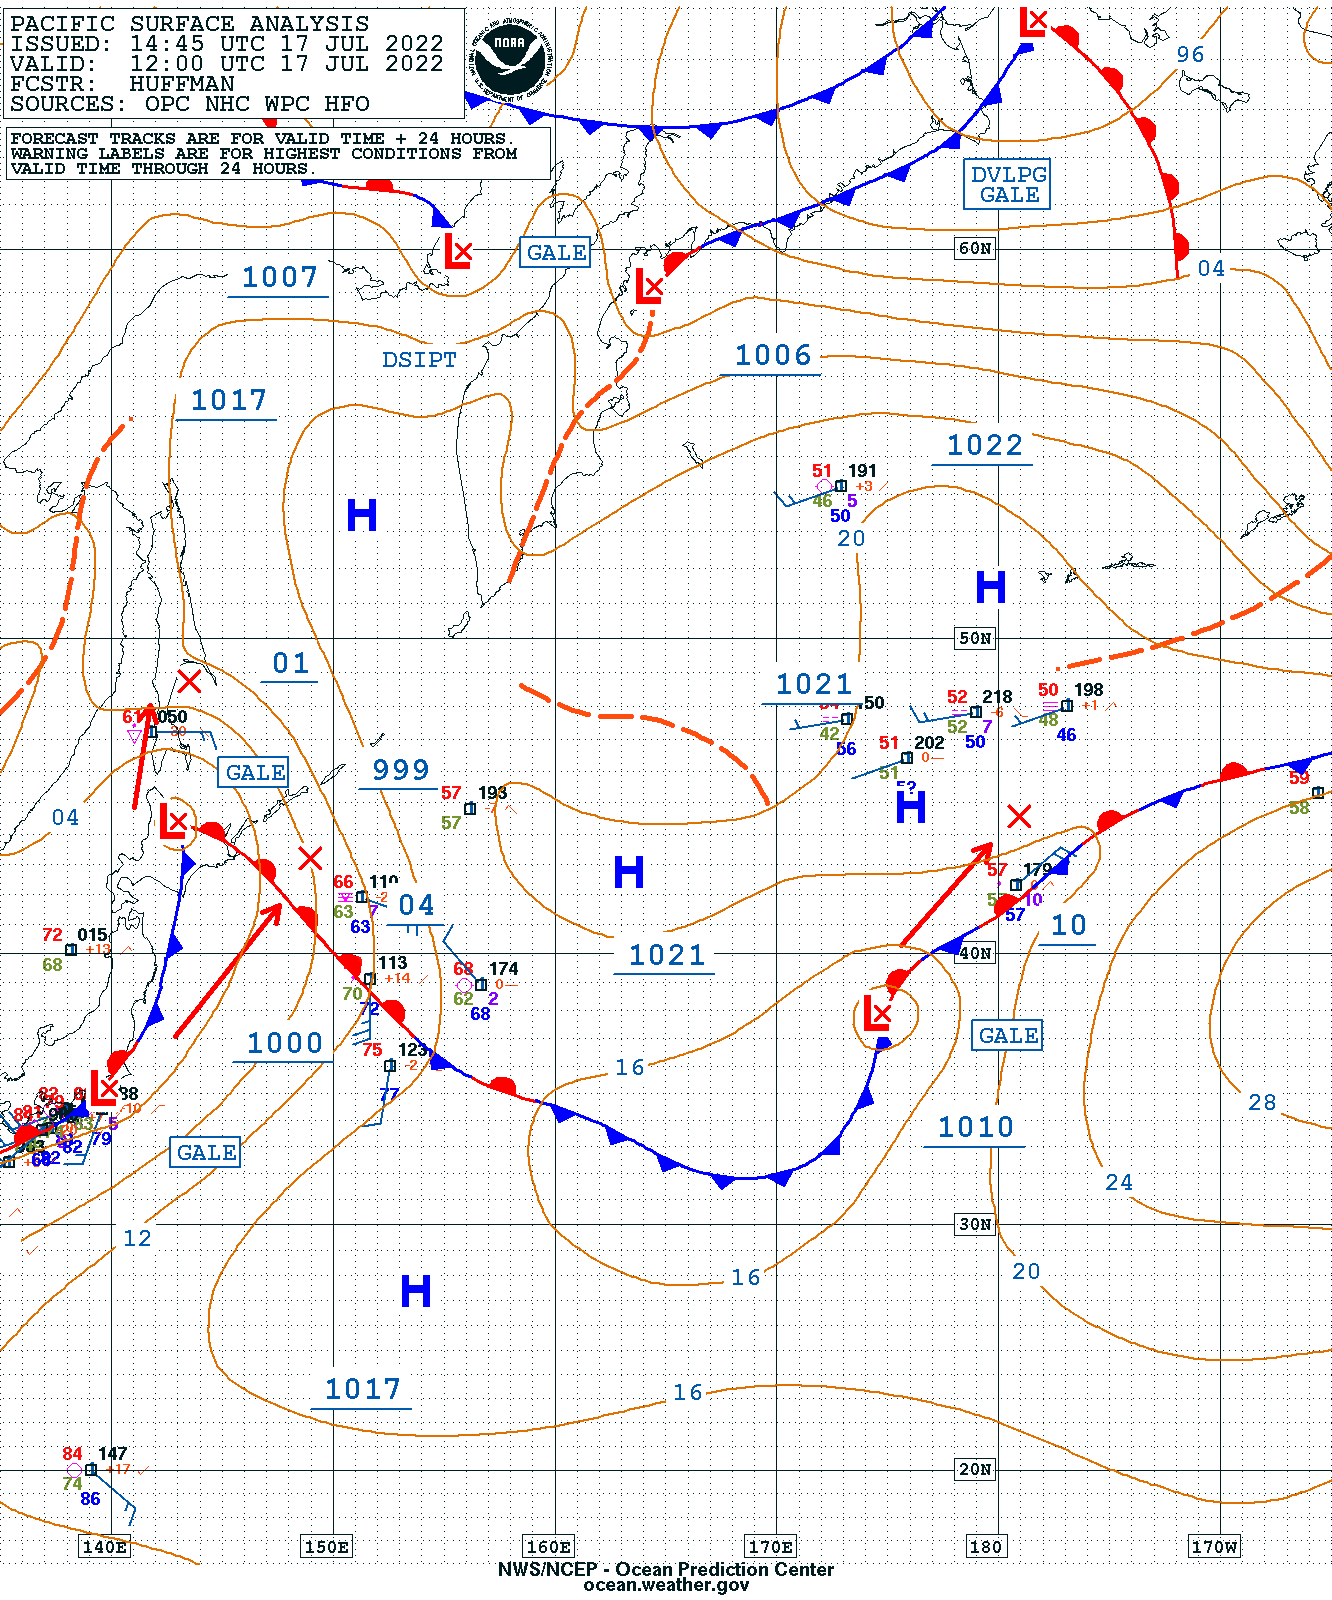 Western Pacific Surface Analysis